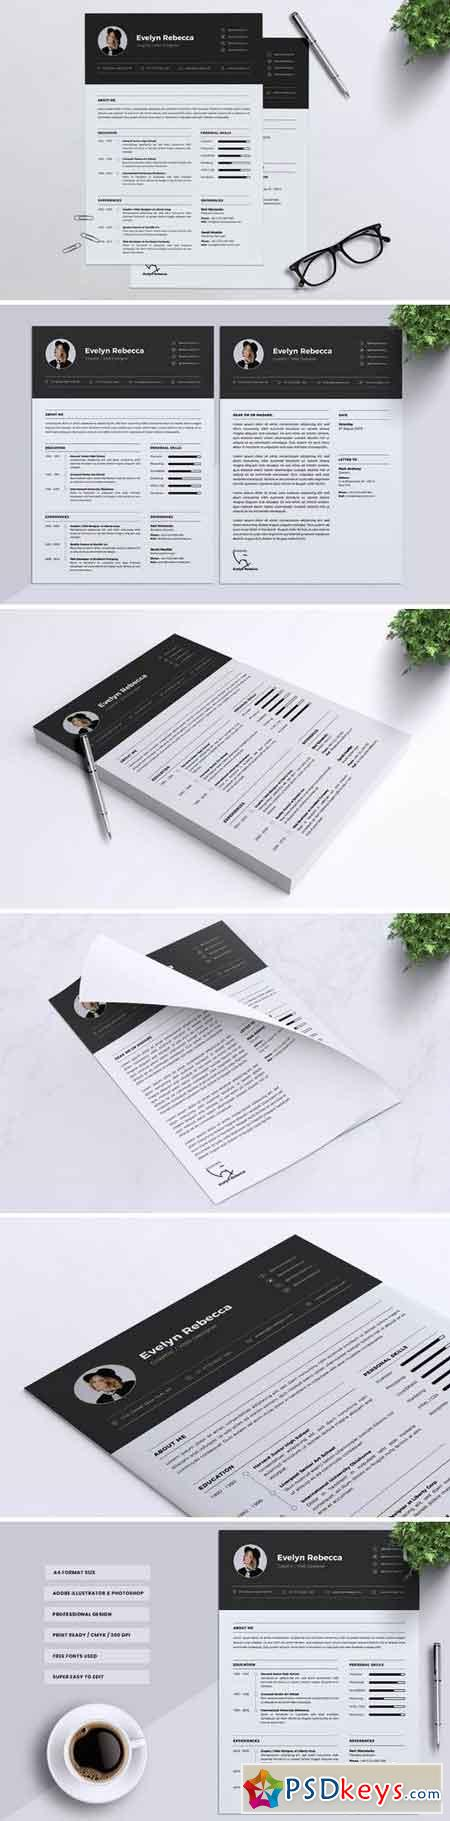 Minimalist CV Resume Vol07